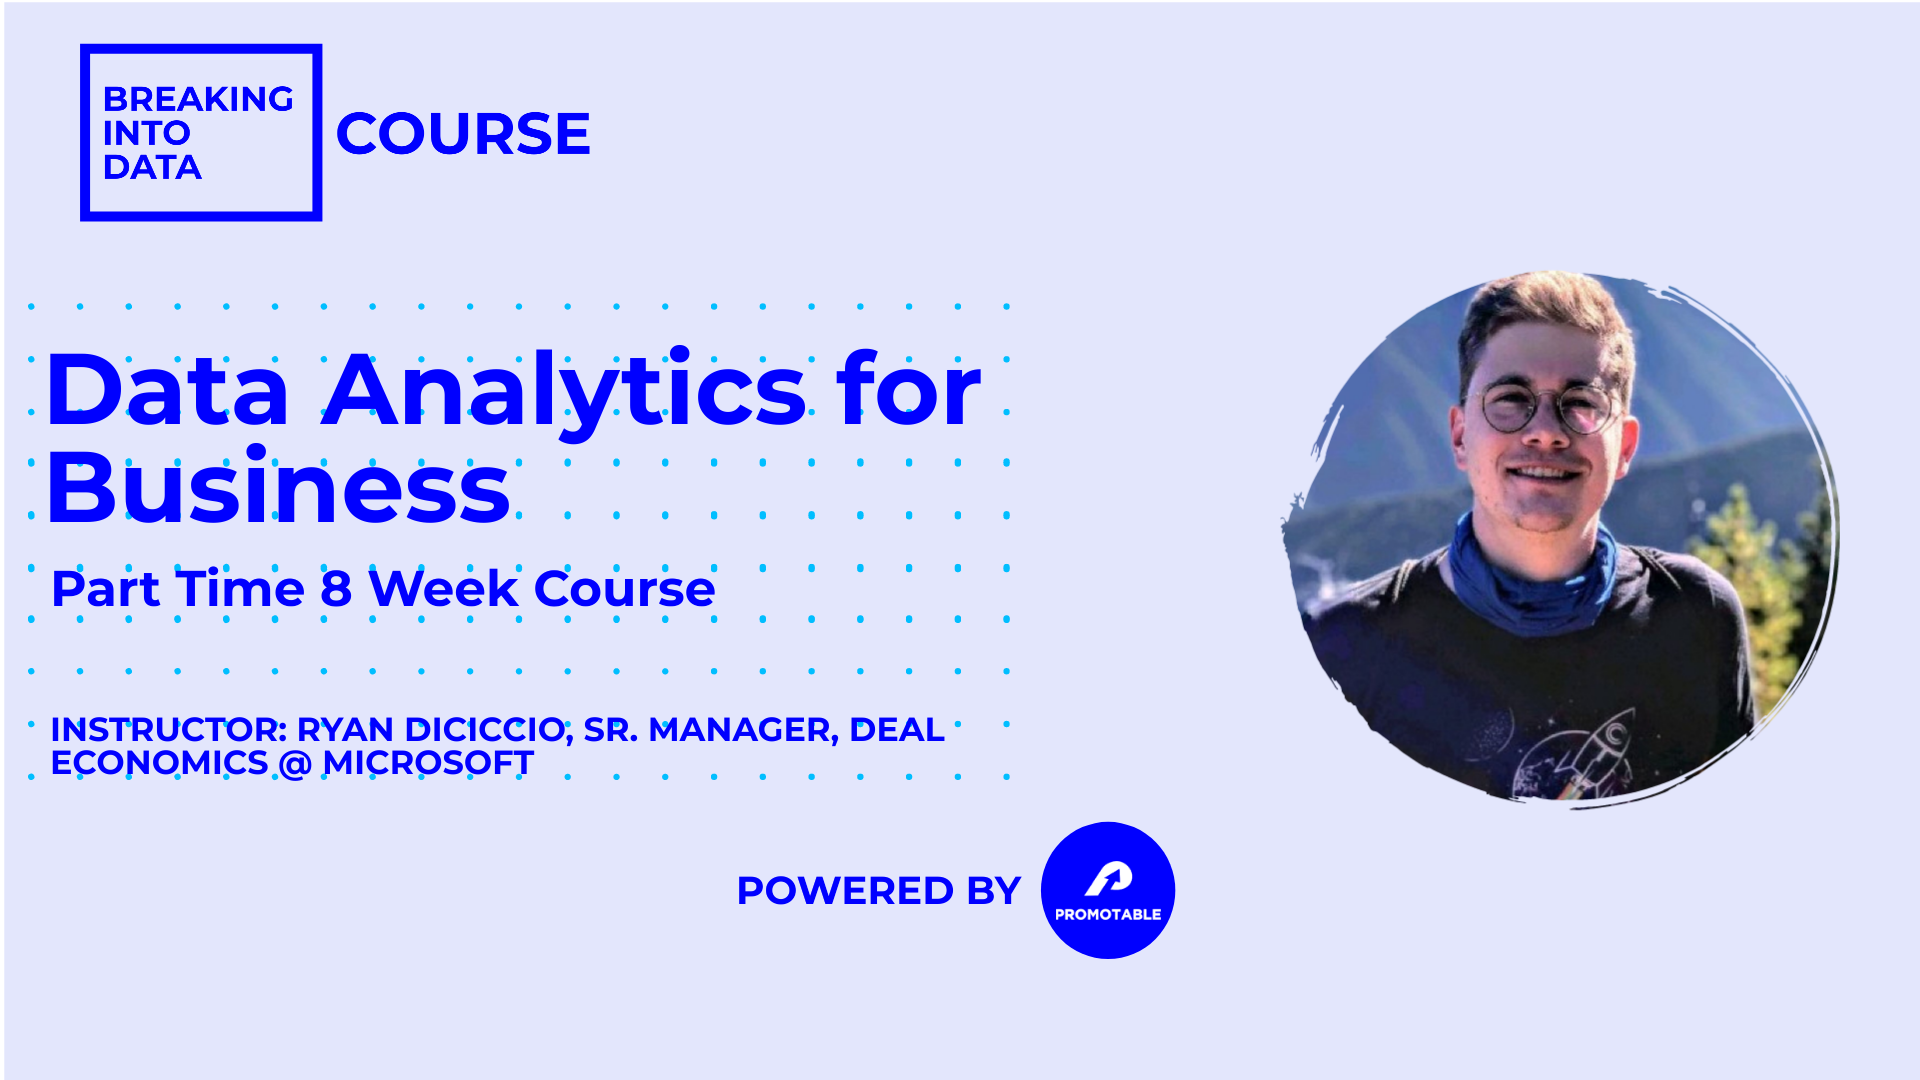 [VIRTUAL] Data Analytics for Business - Part Time 8 Week Course